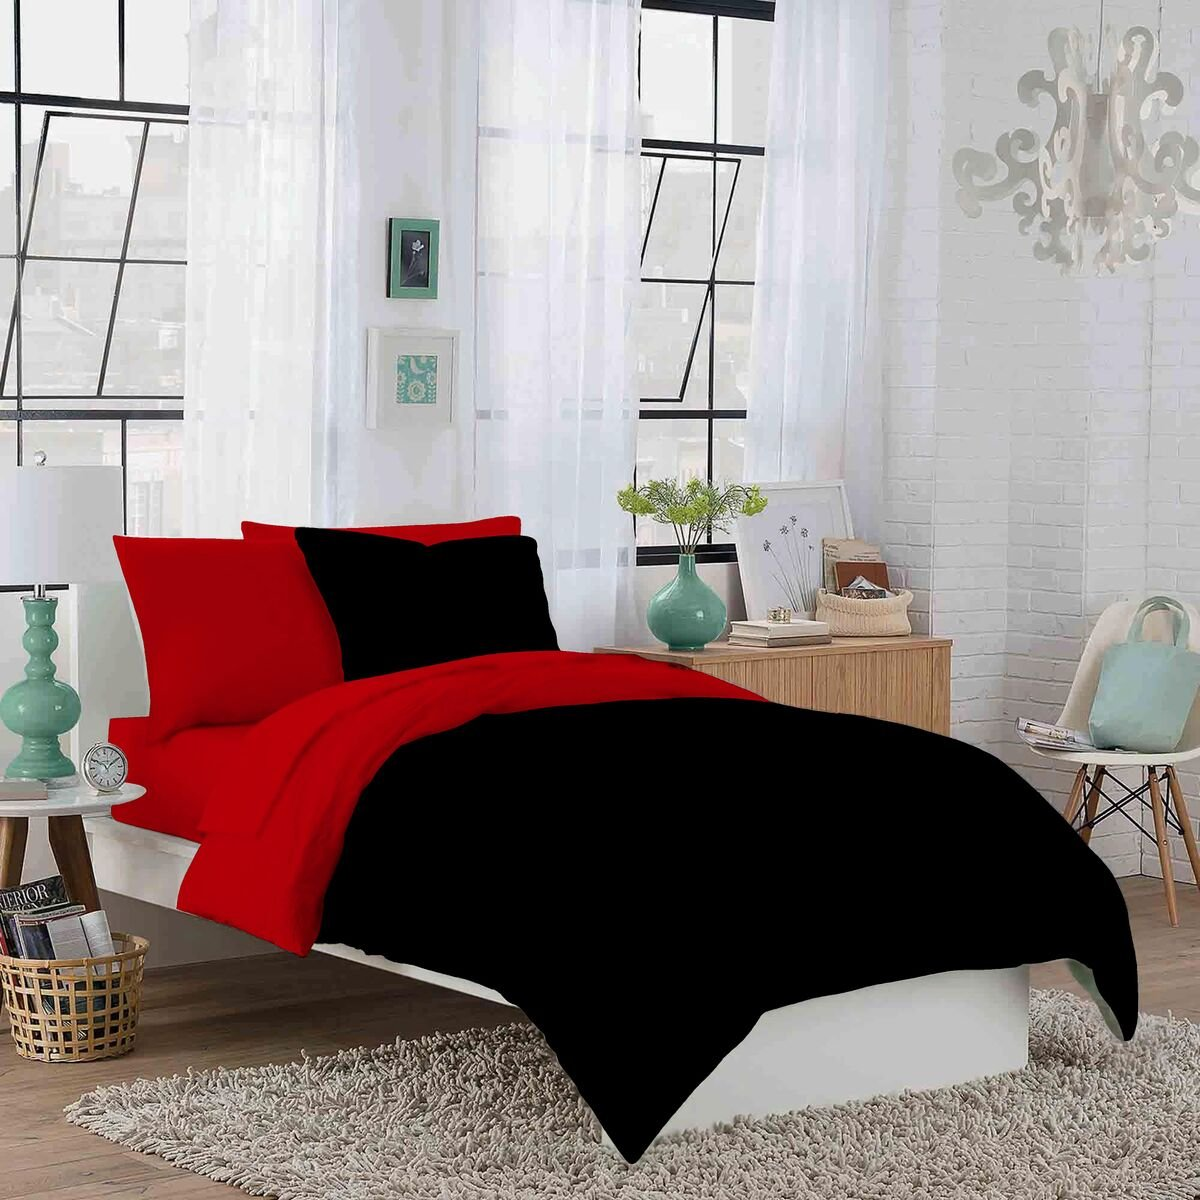 By Crescent Bedding  Black Twin XL Soft and Comfy Twin Extra Long 100/% Cotton jersey Sheet Set